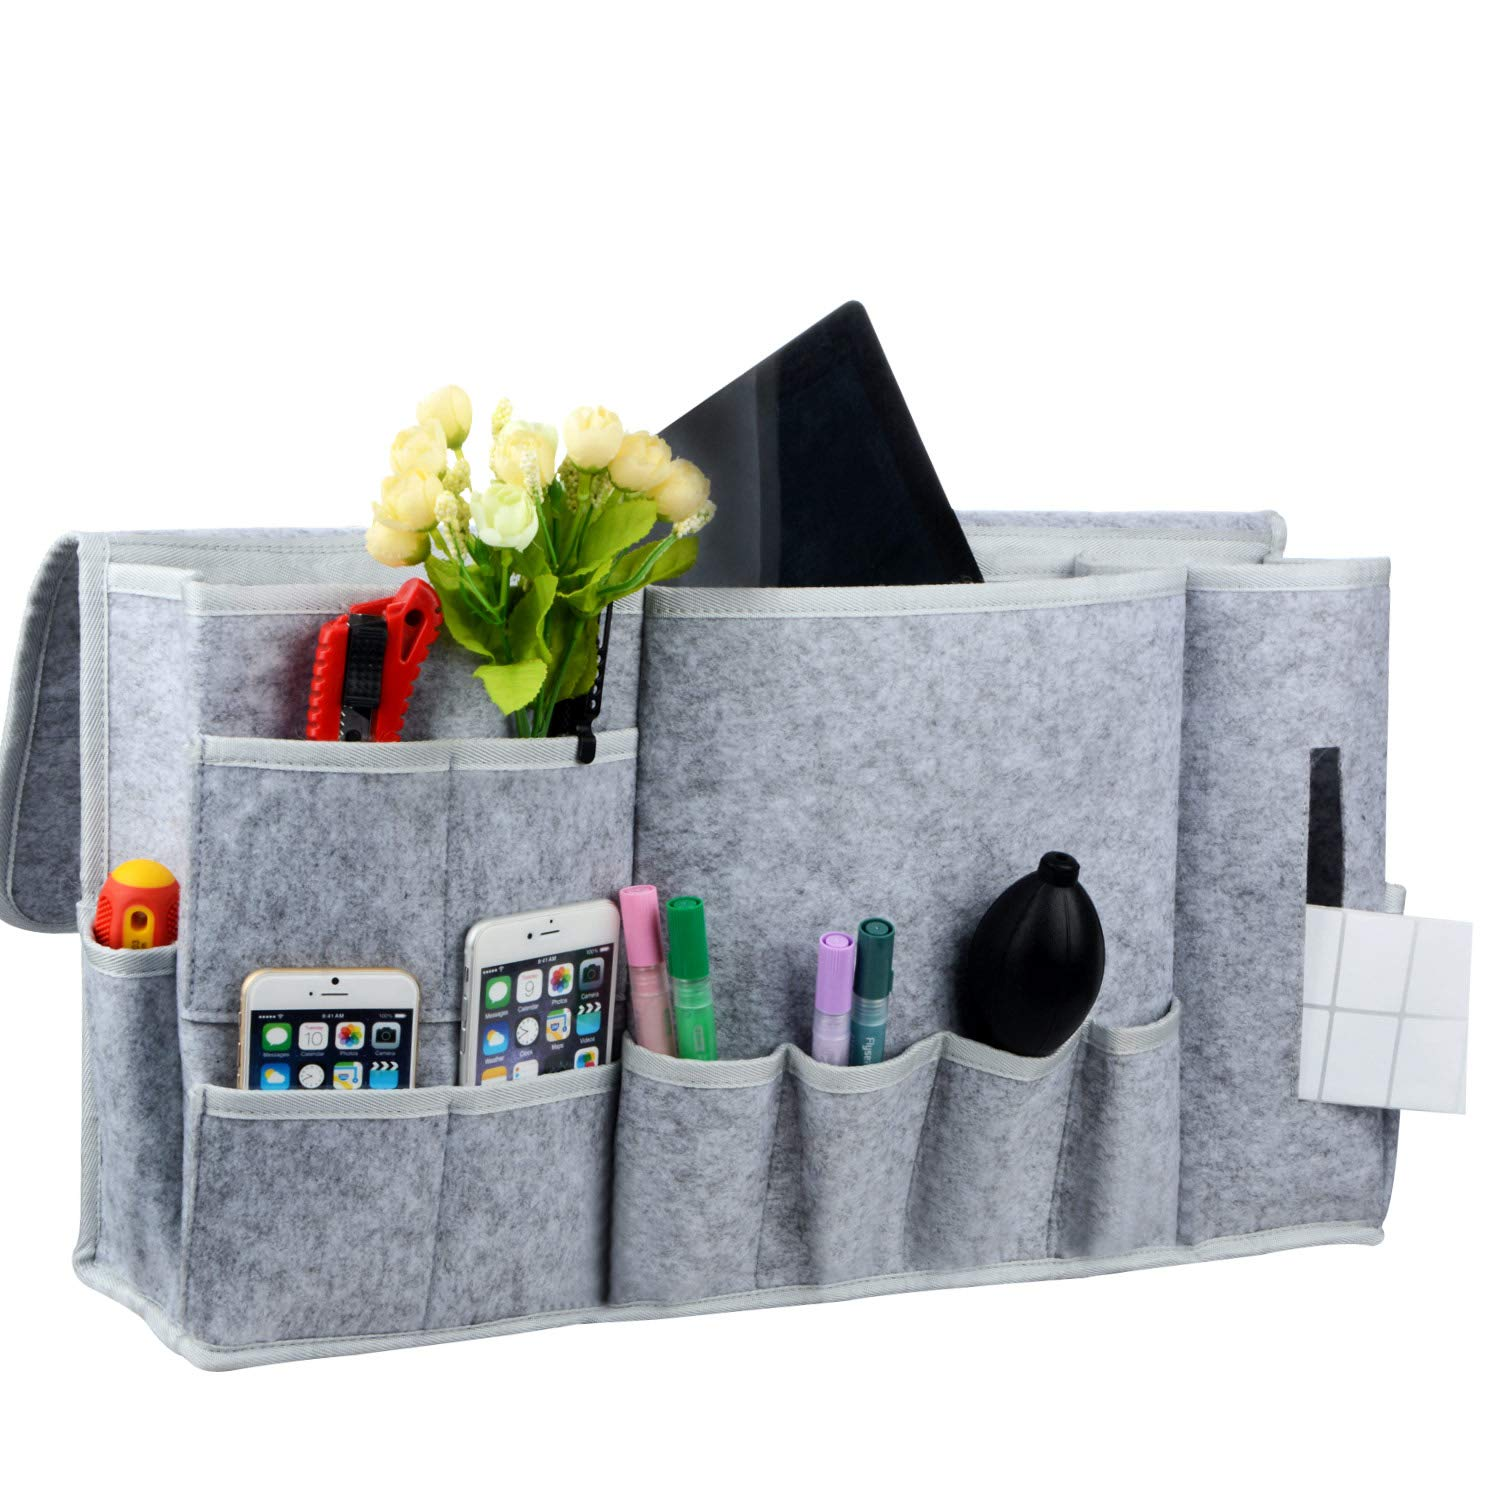 12 Pocket Bedside Caddy,Felt Bedside Storage Organizer,Table Cabinet Storage Organizer for Headboards, Bed Rails, Dorm Rooms,Bunk Beds,Apartments,Bathrooms and Travel PinnacleT1